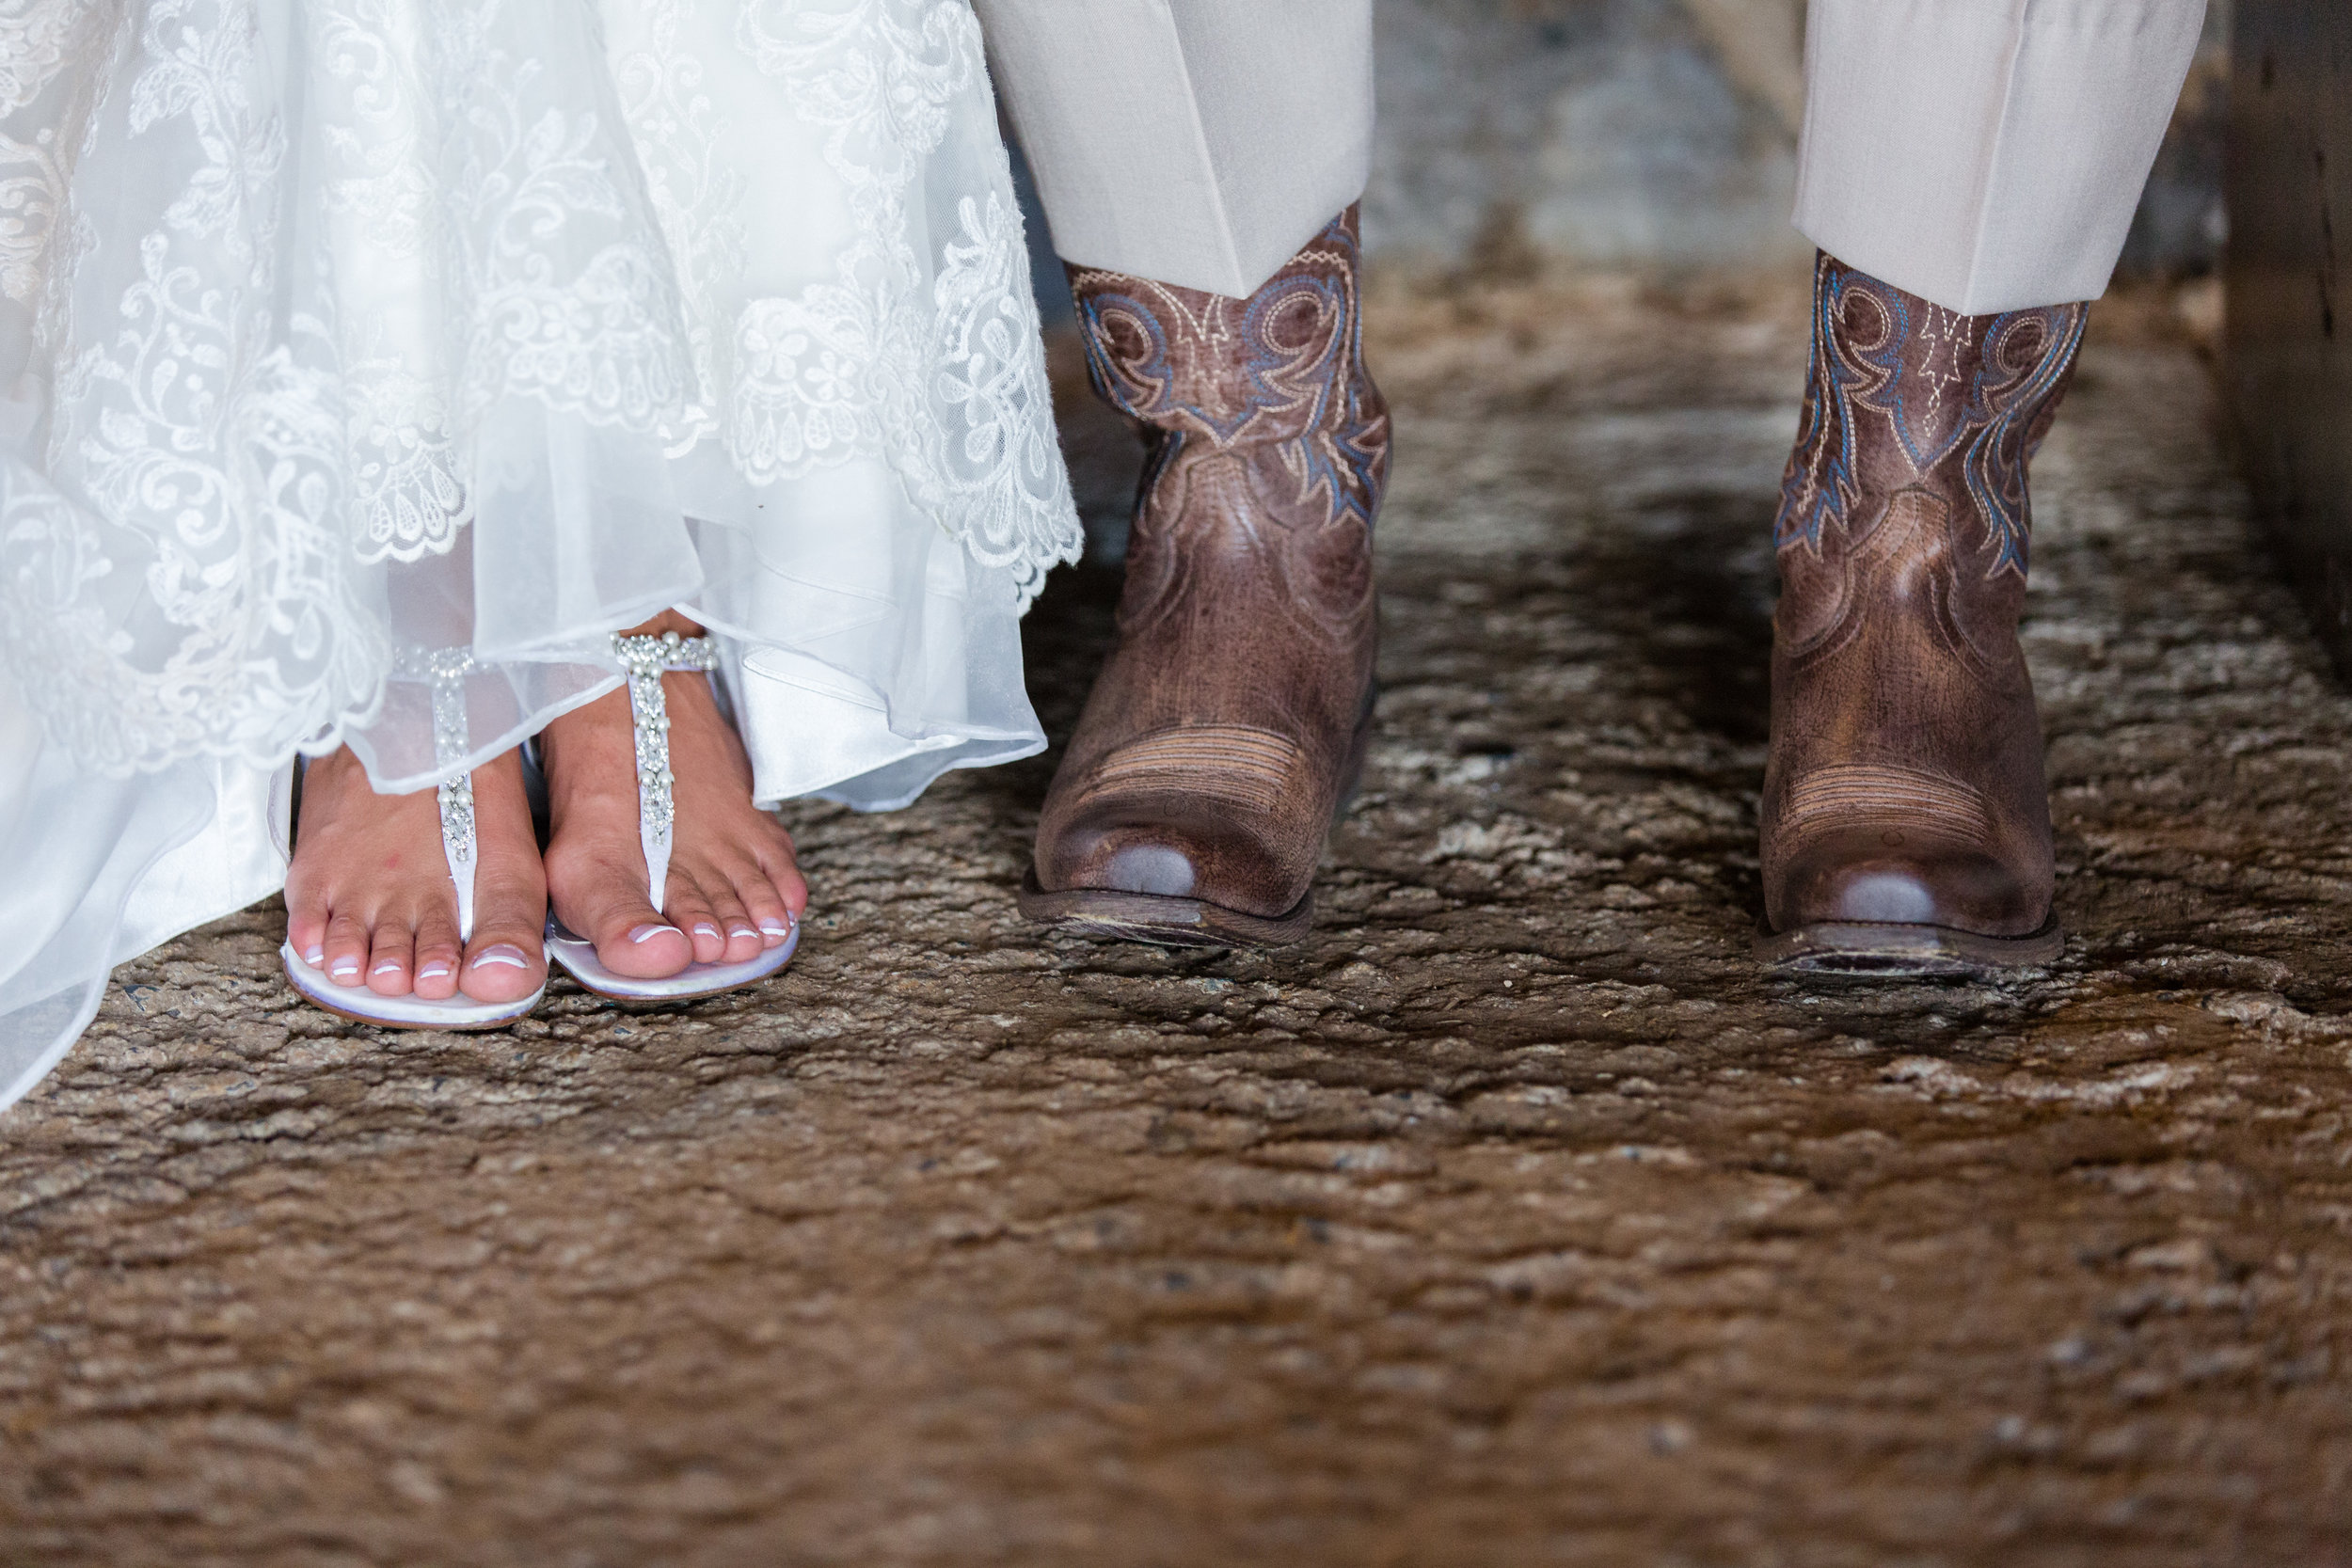 c mckee cross keys wedding 71.jpg